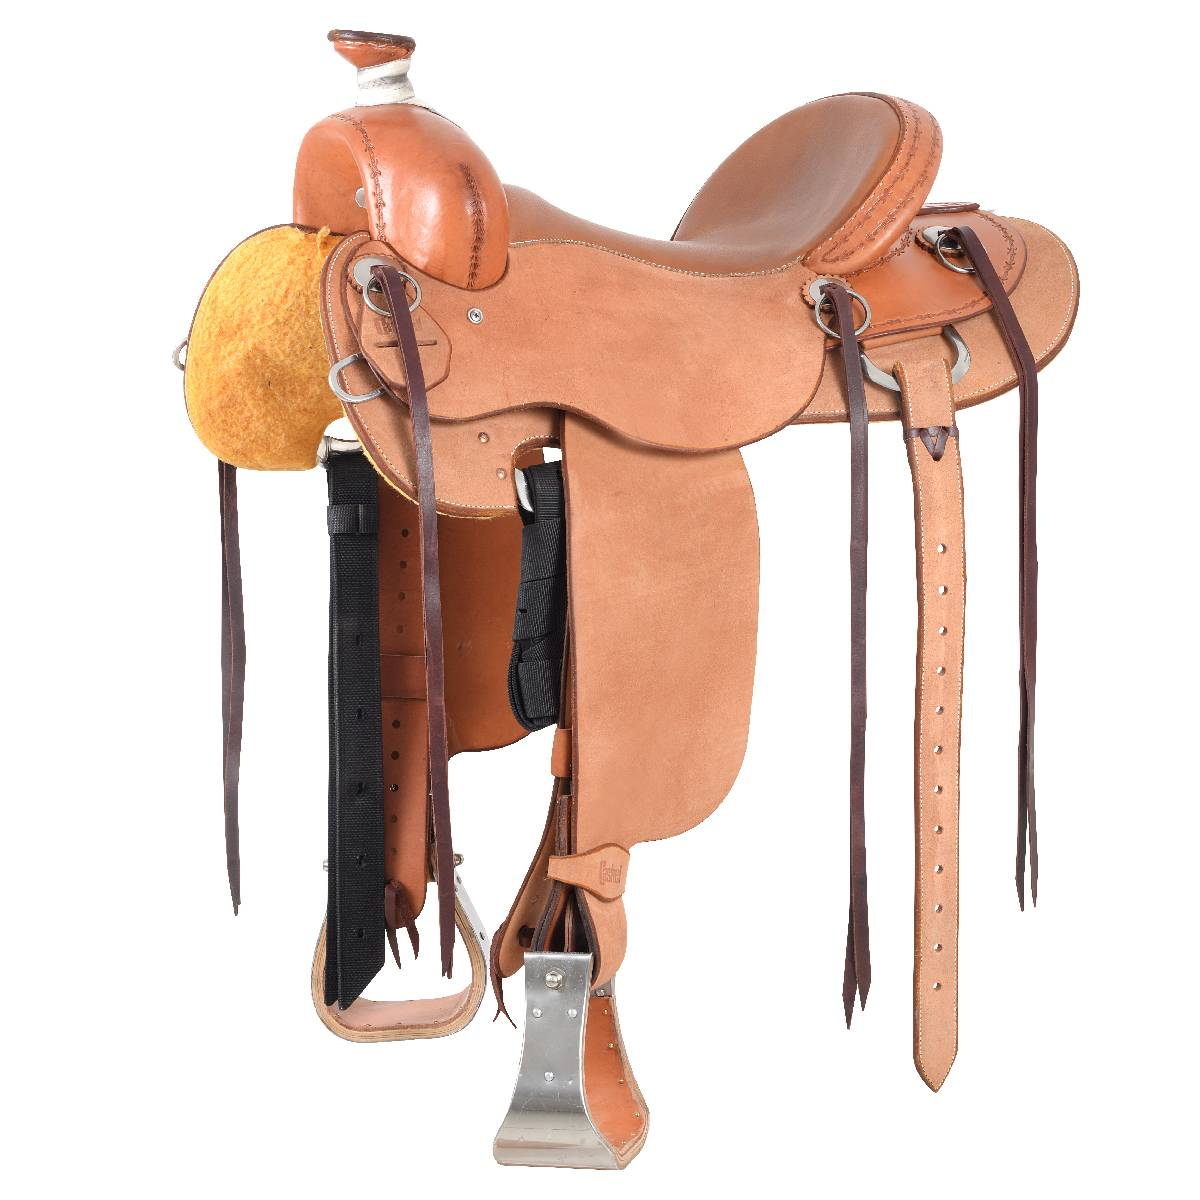 Cashel Drover Saddle